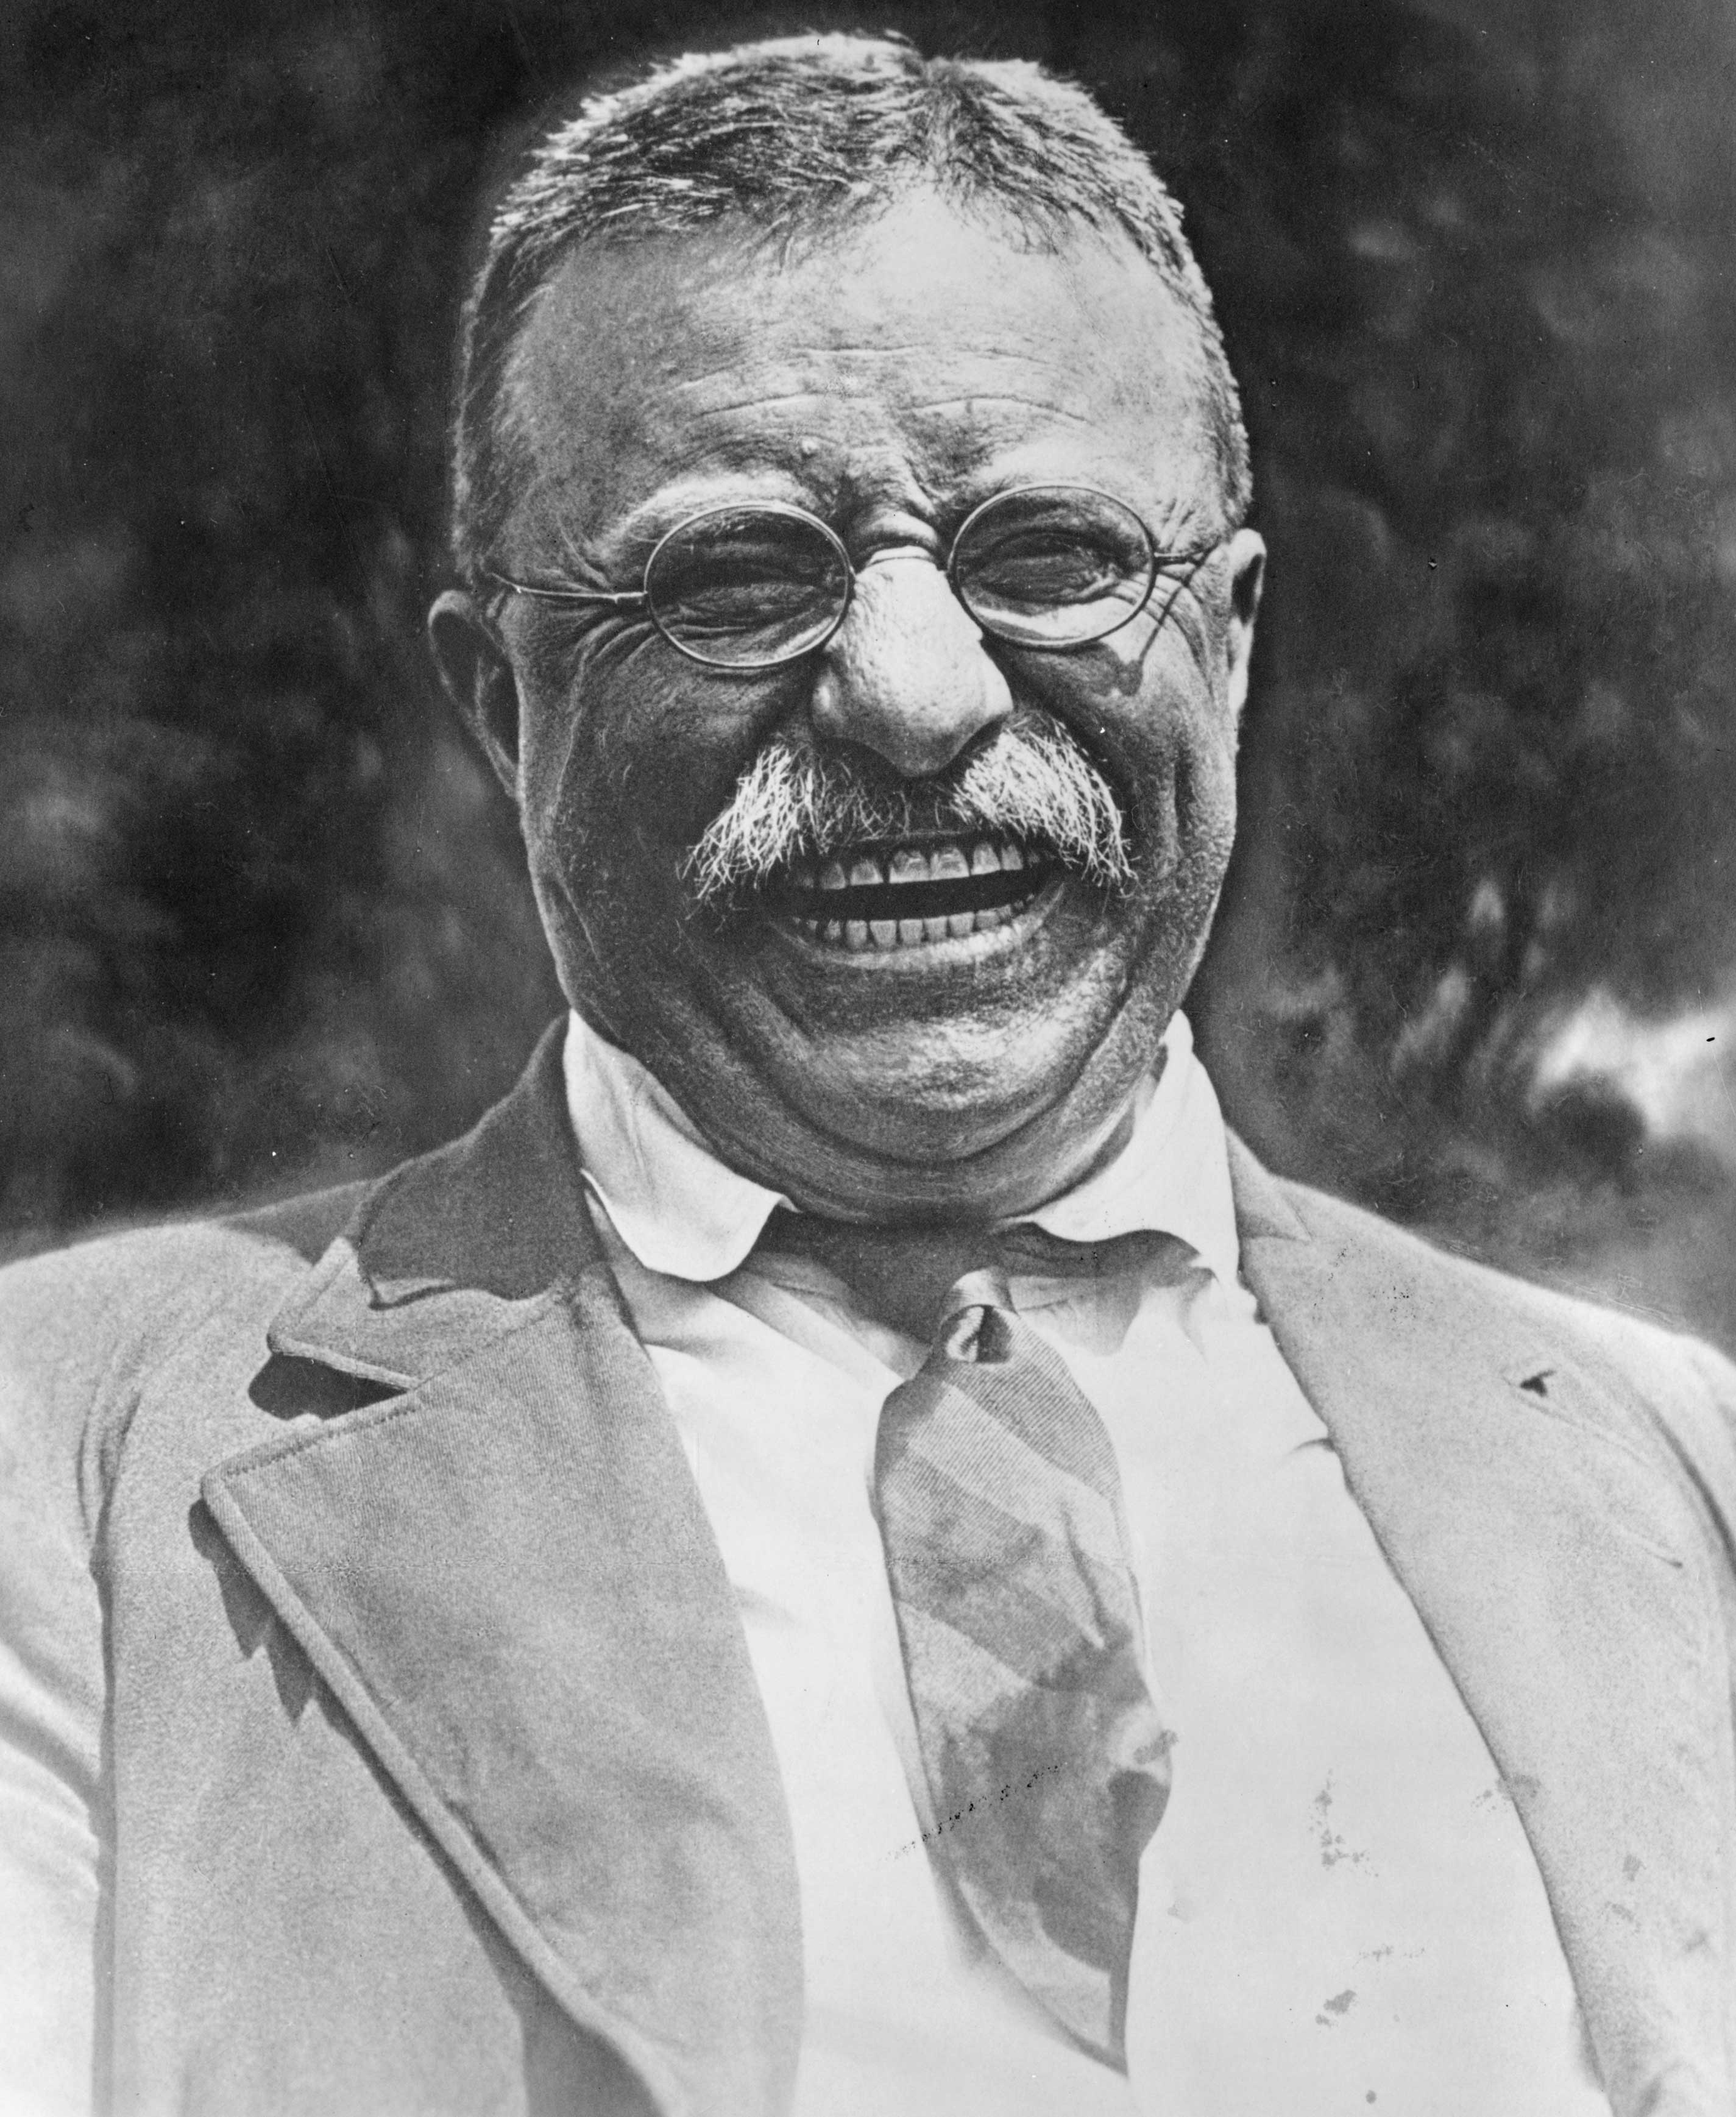 Some questions about Teddy Roosevelt?